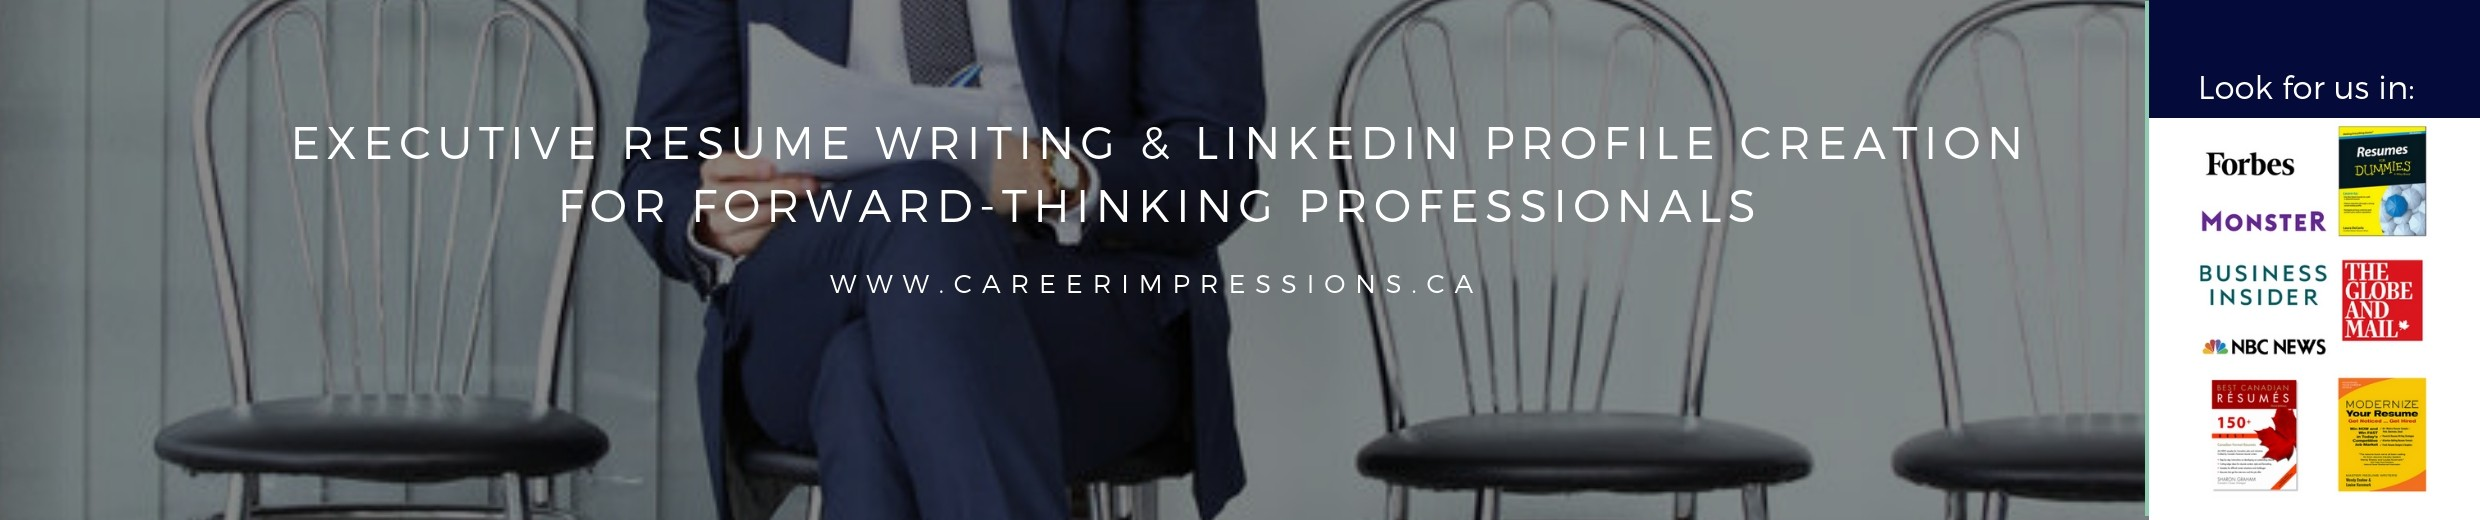 Career Impressions: Executive Resume Writing and Job Search